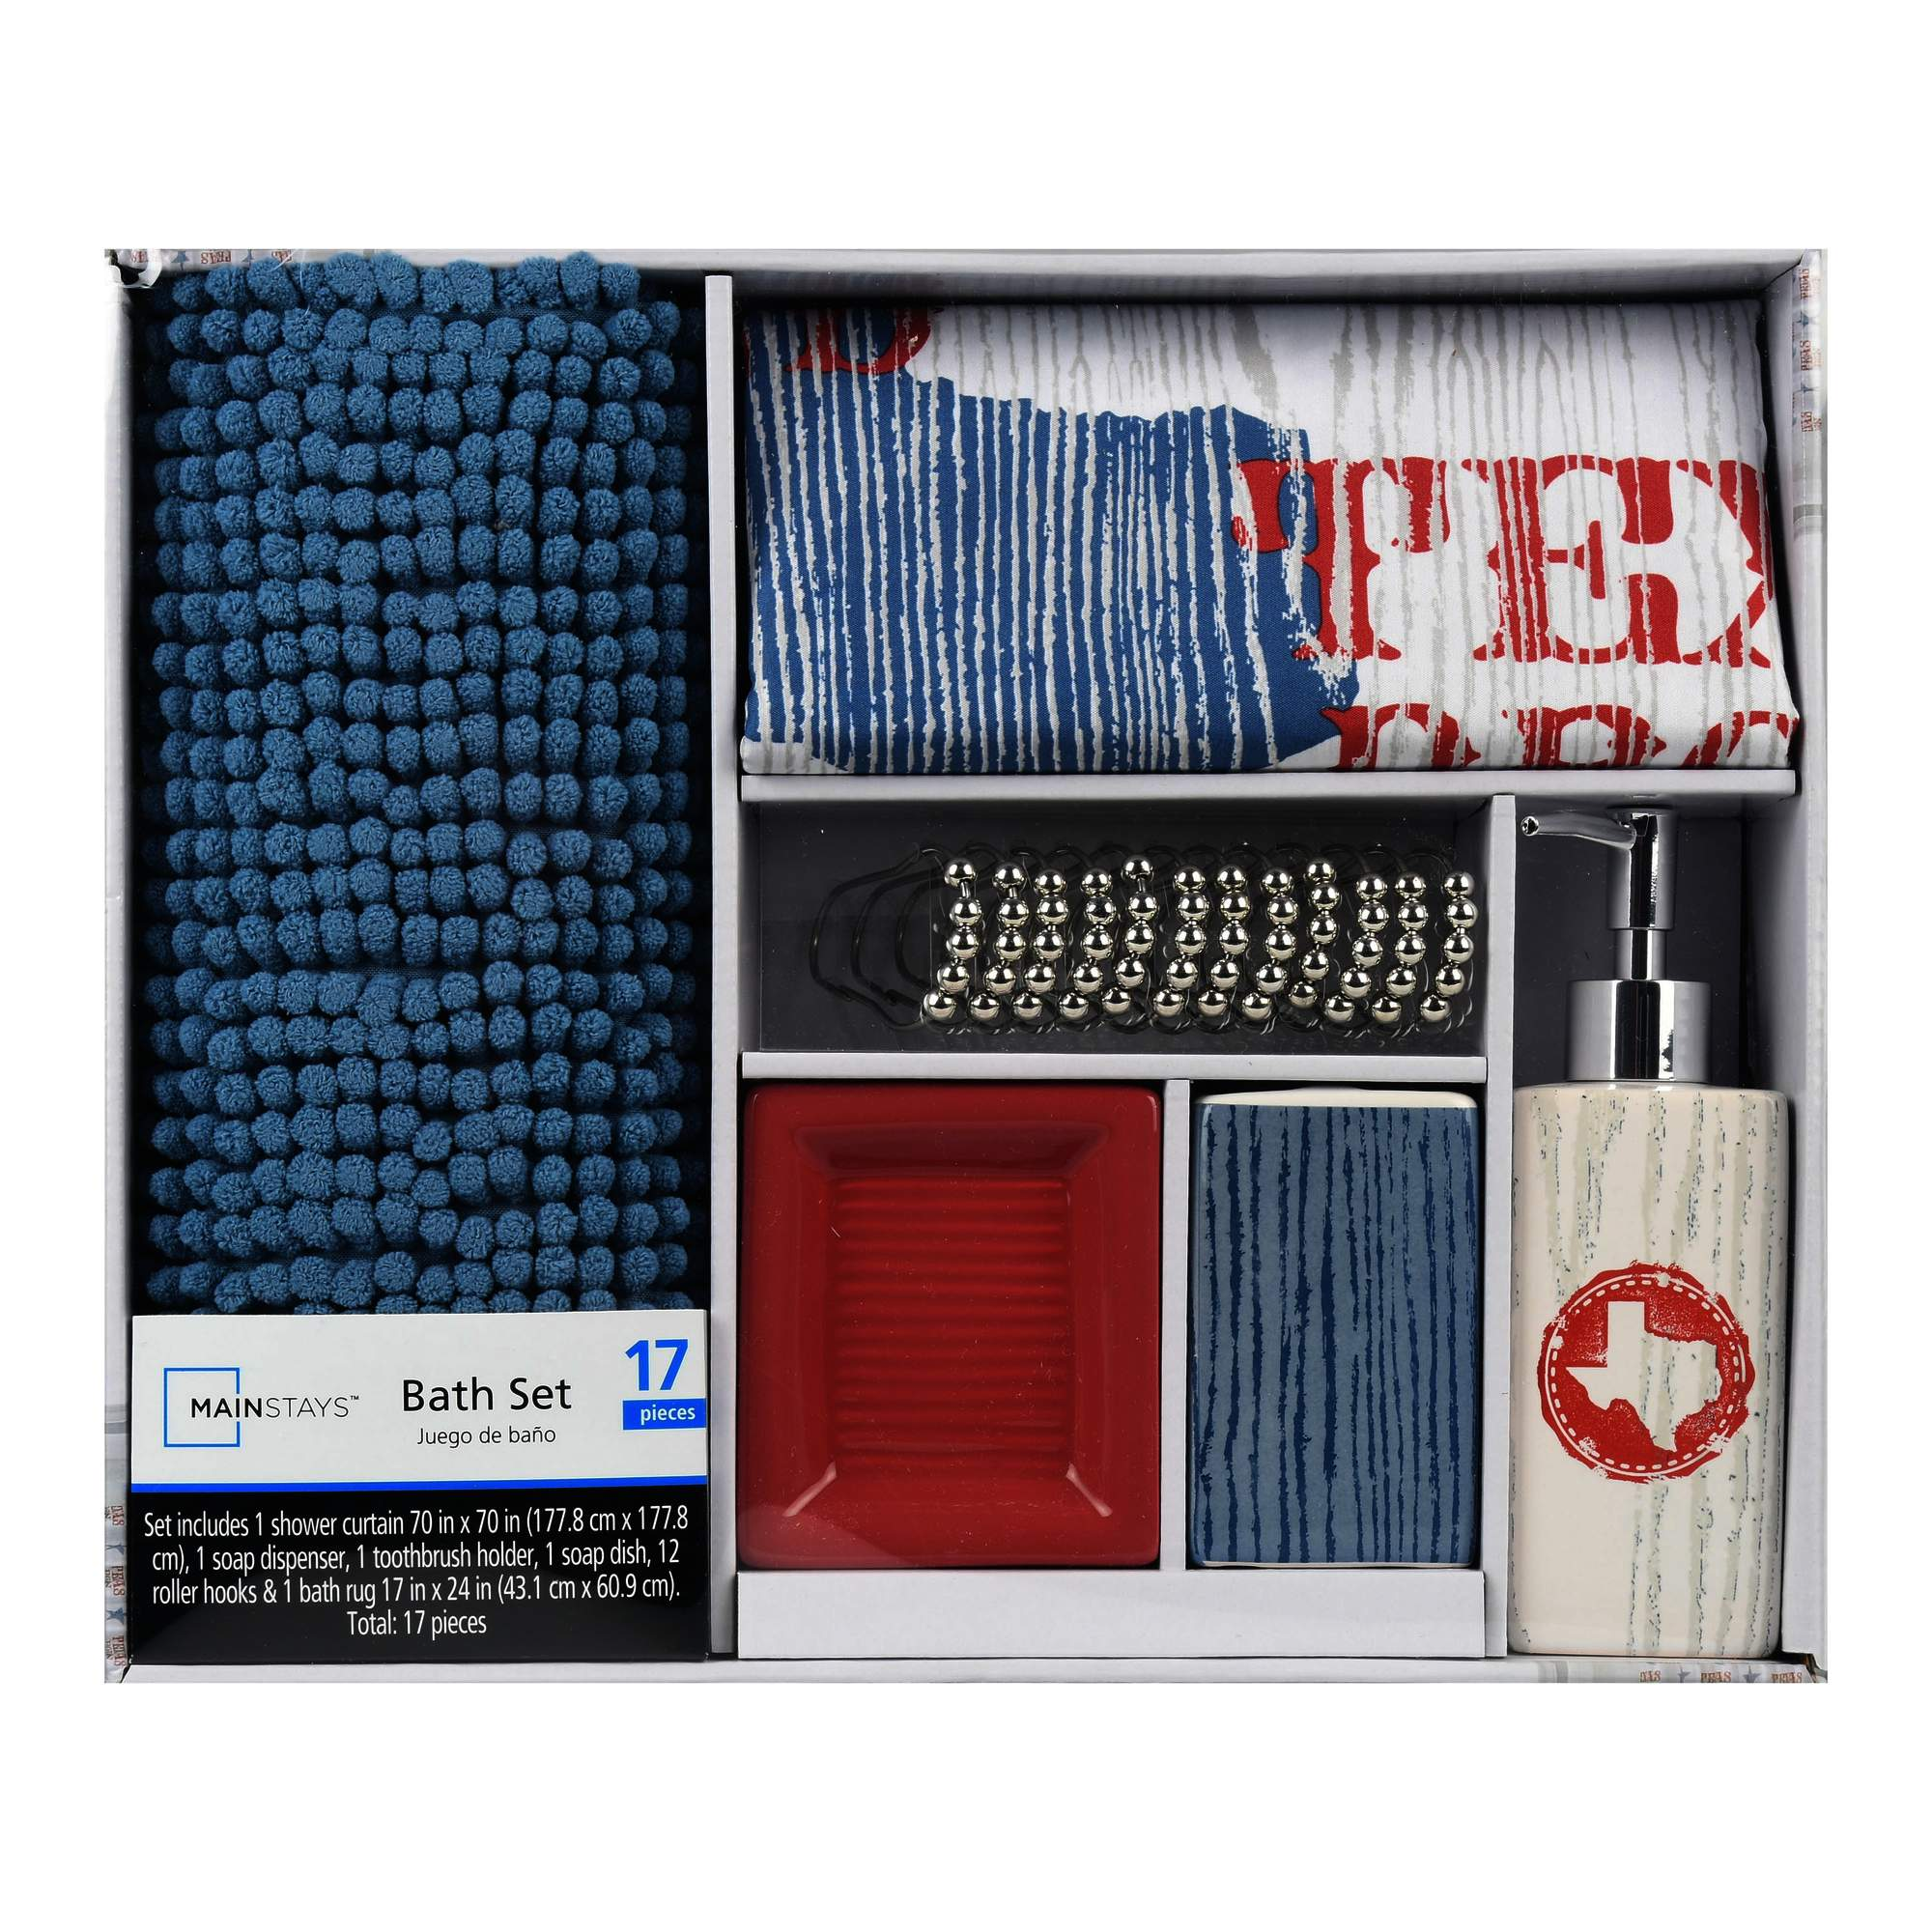 Mainstays 17-Piece Bathroom Set, Texan Born